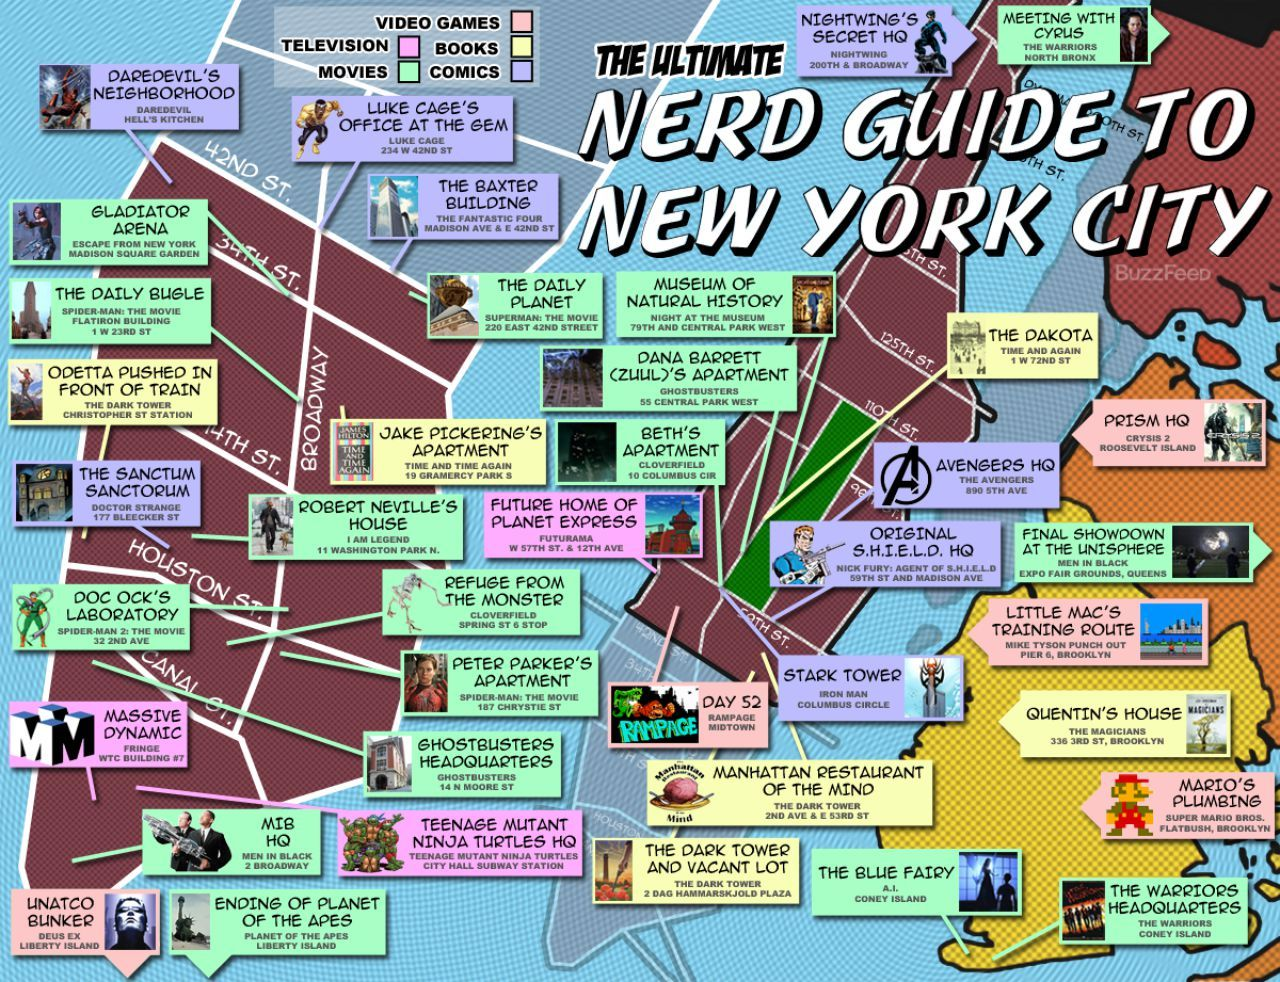 buzzfeed has a neat little map of new york city four out of five boroughs